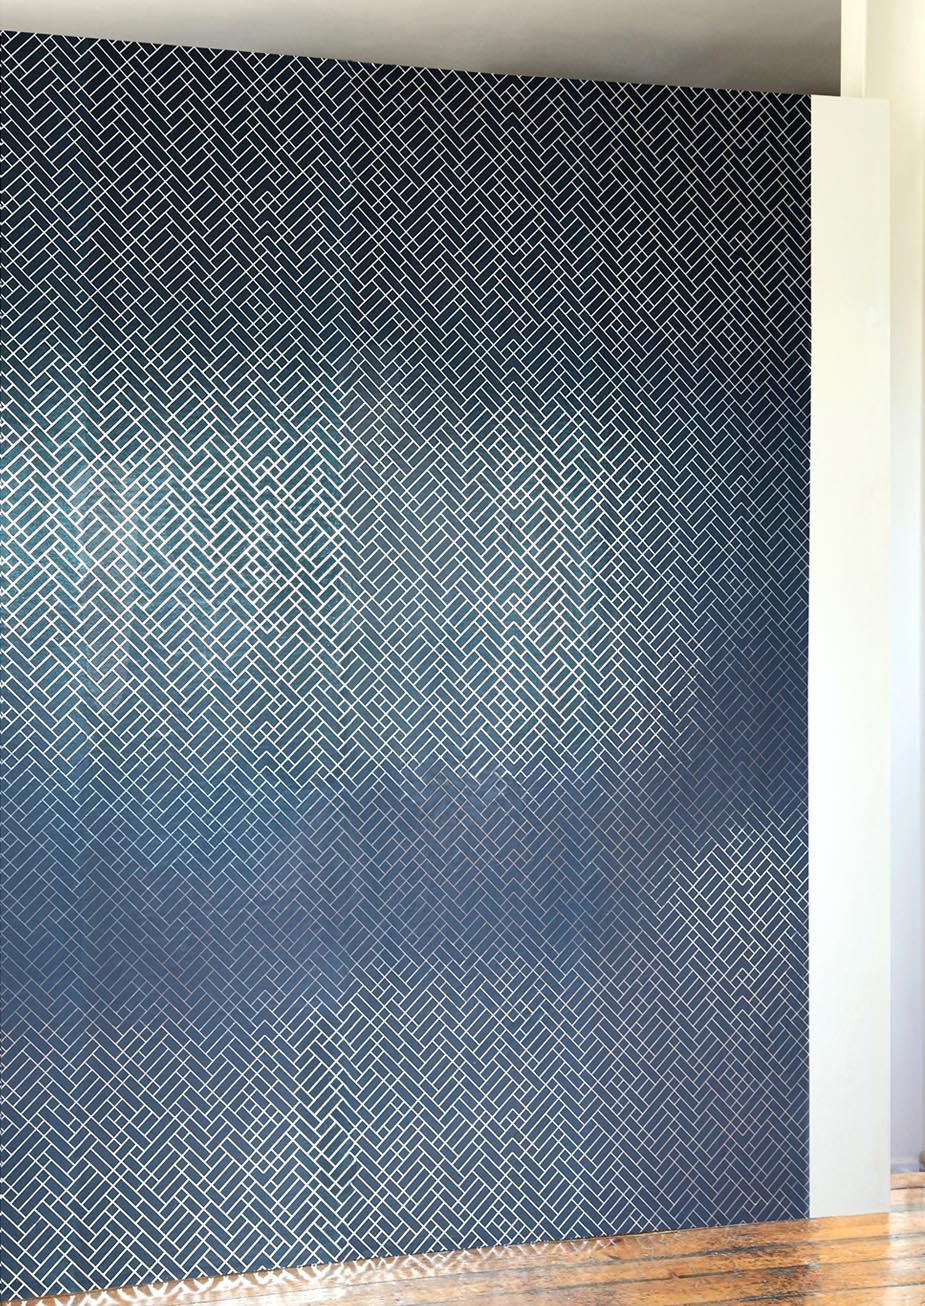 tapet cafe wallpaper by erica wakerly 6900 this modern tapet cafe wallpaper by british designer